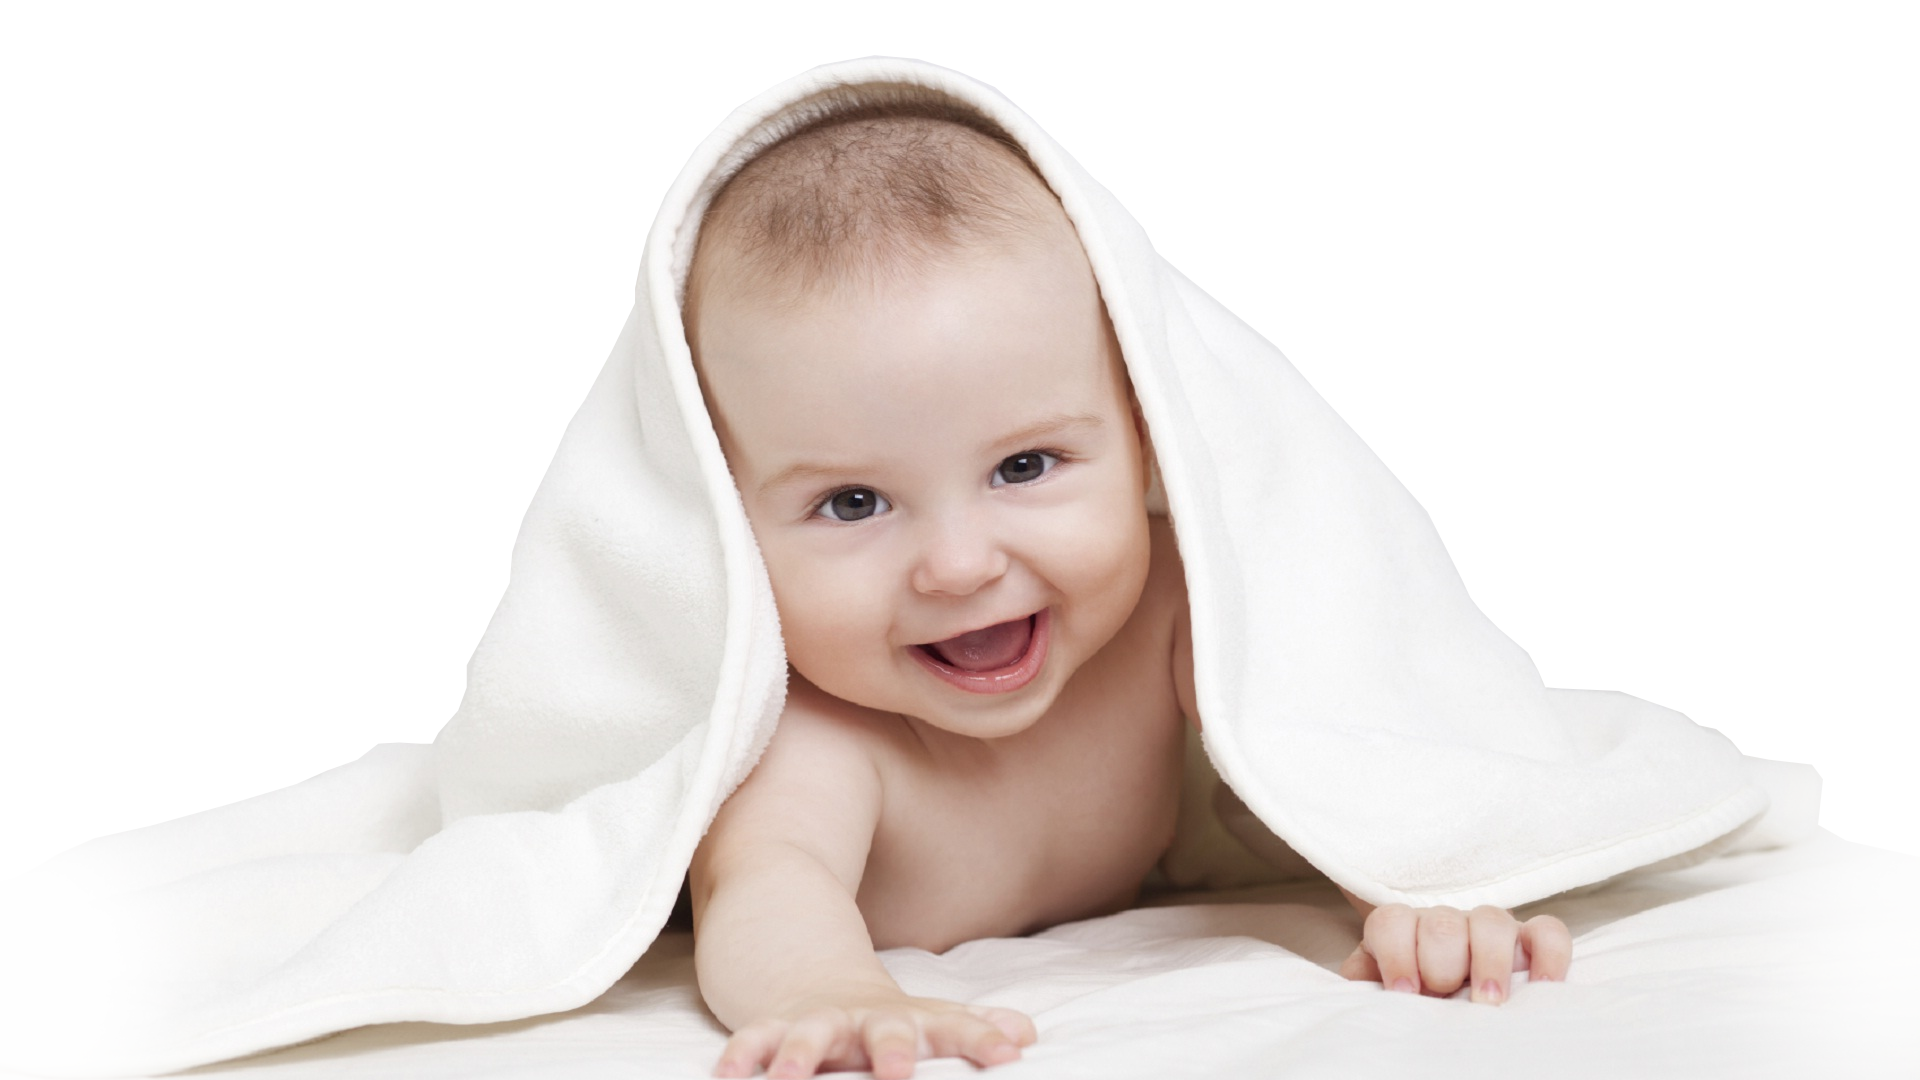 PNG HD Pictures Of Children - 124115